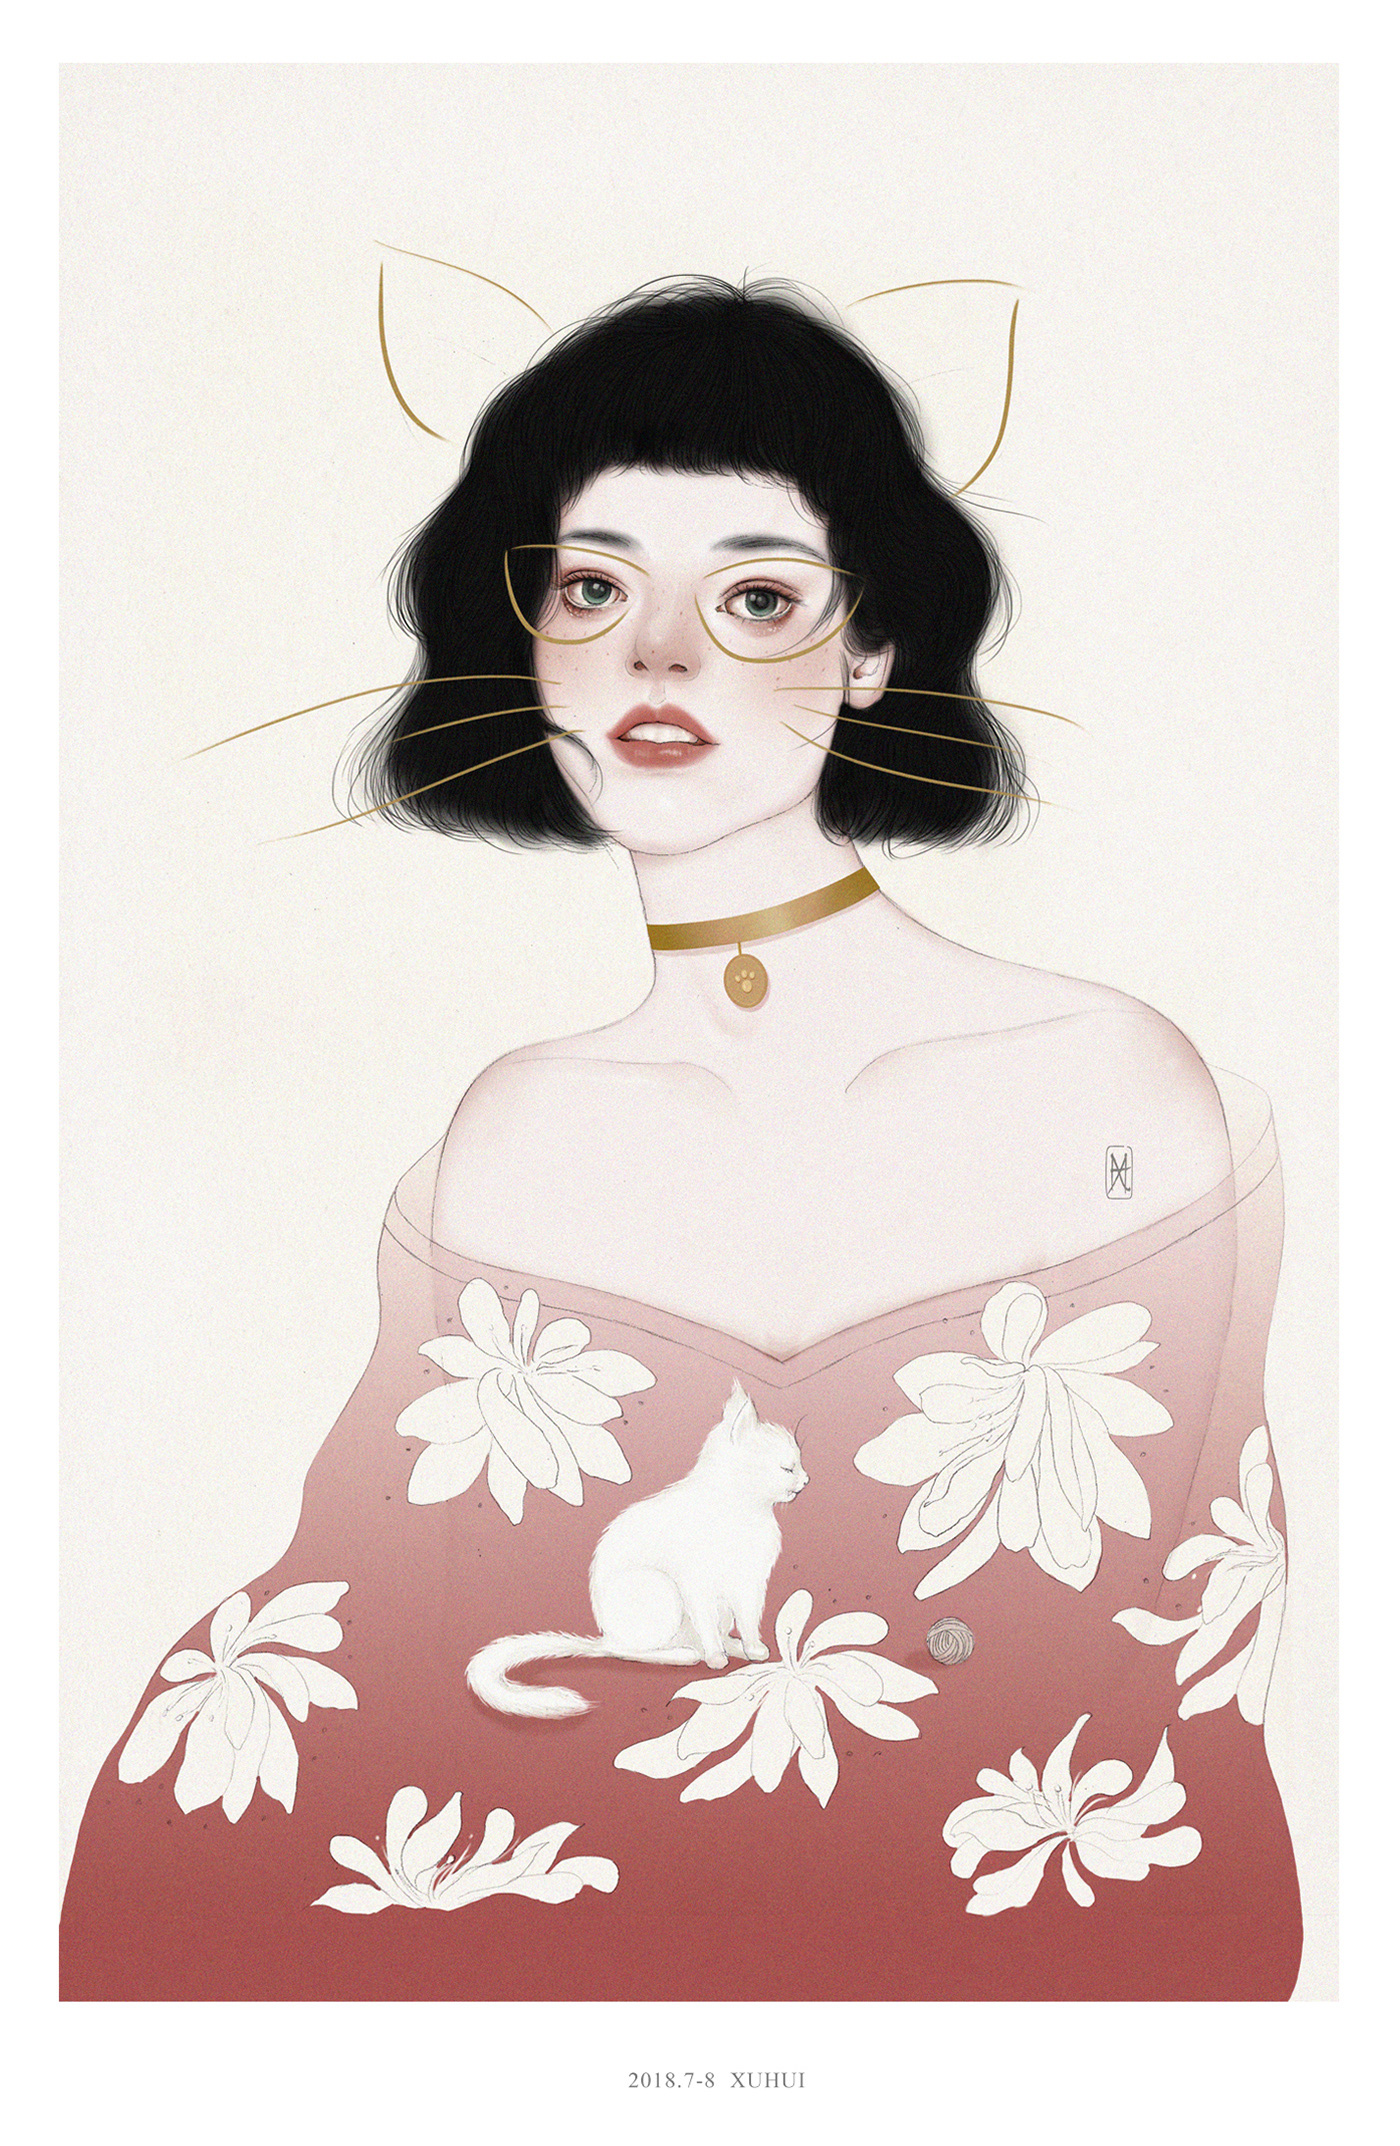 Drawing of a Beautiful Girl Wearing a Cat and Flower Printed Top